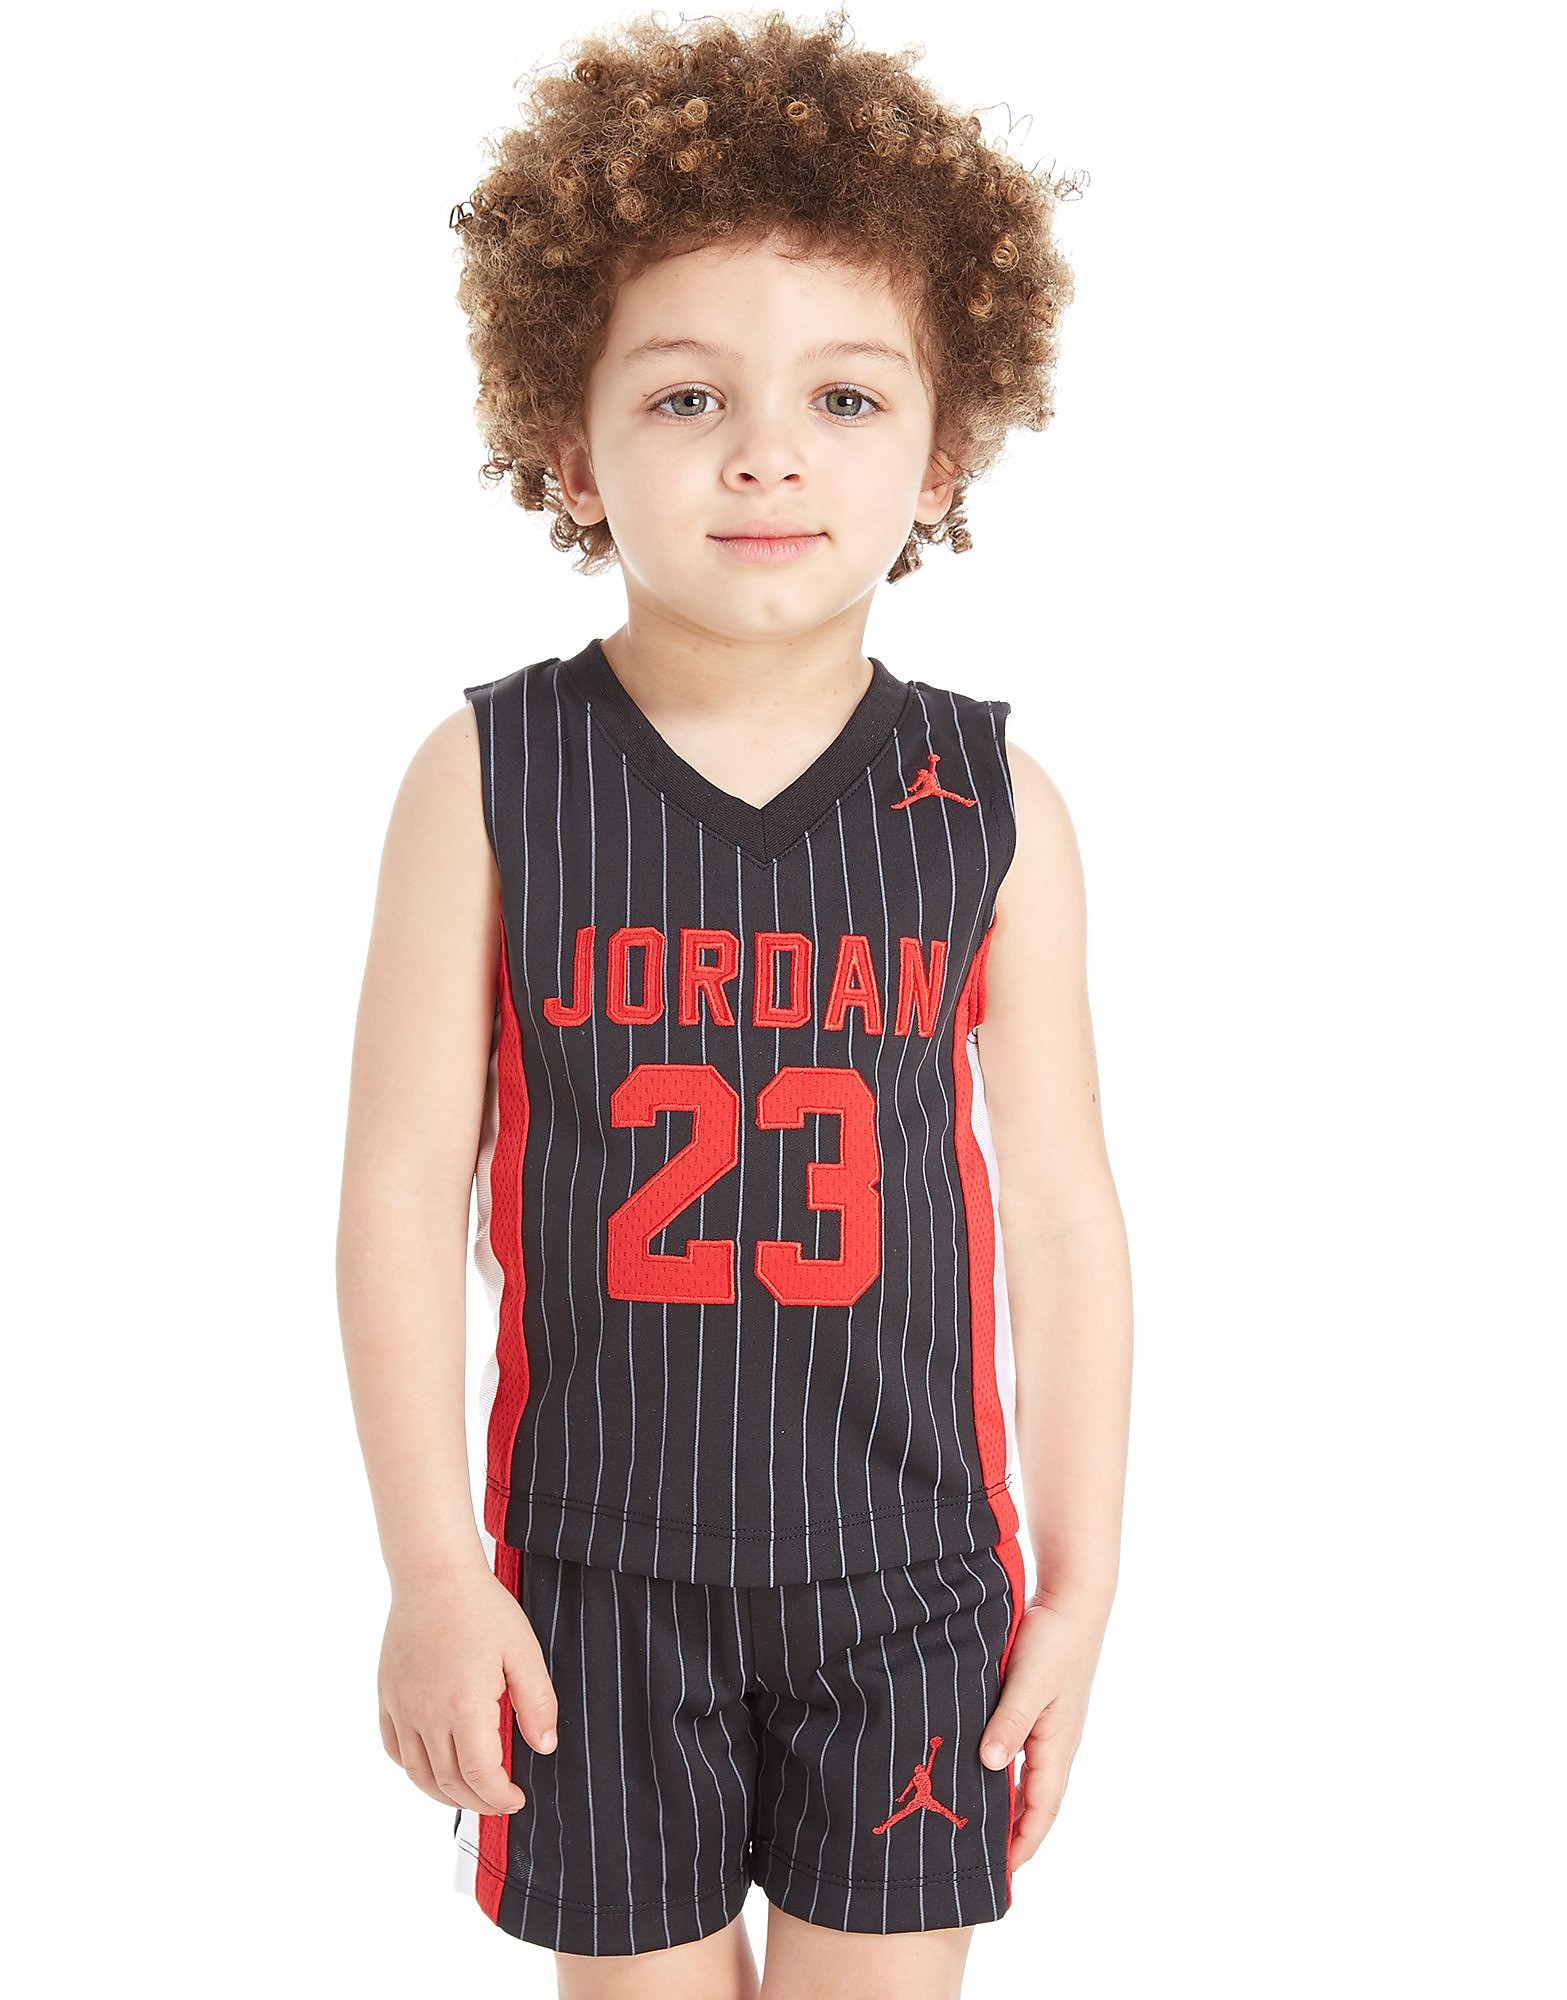 Jordan Retro Kit Set Infant